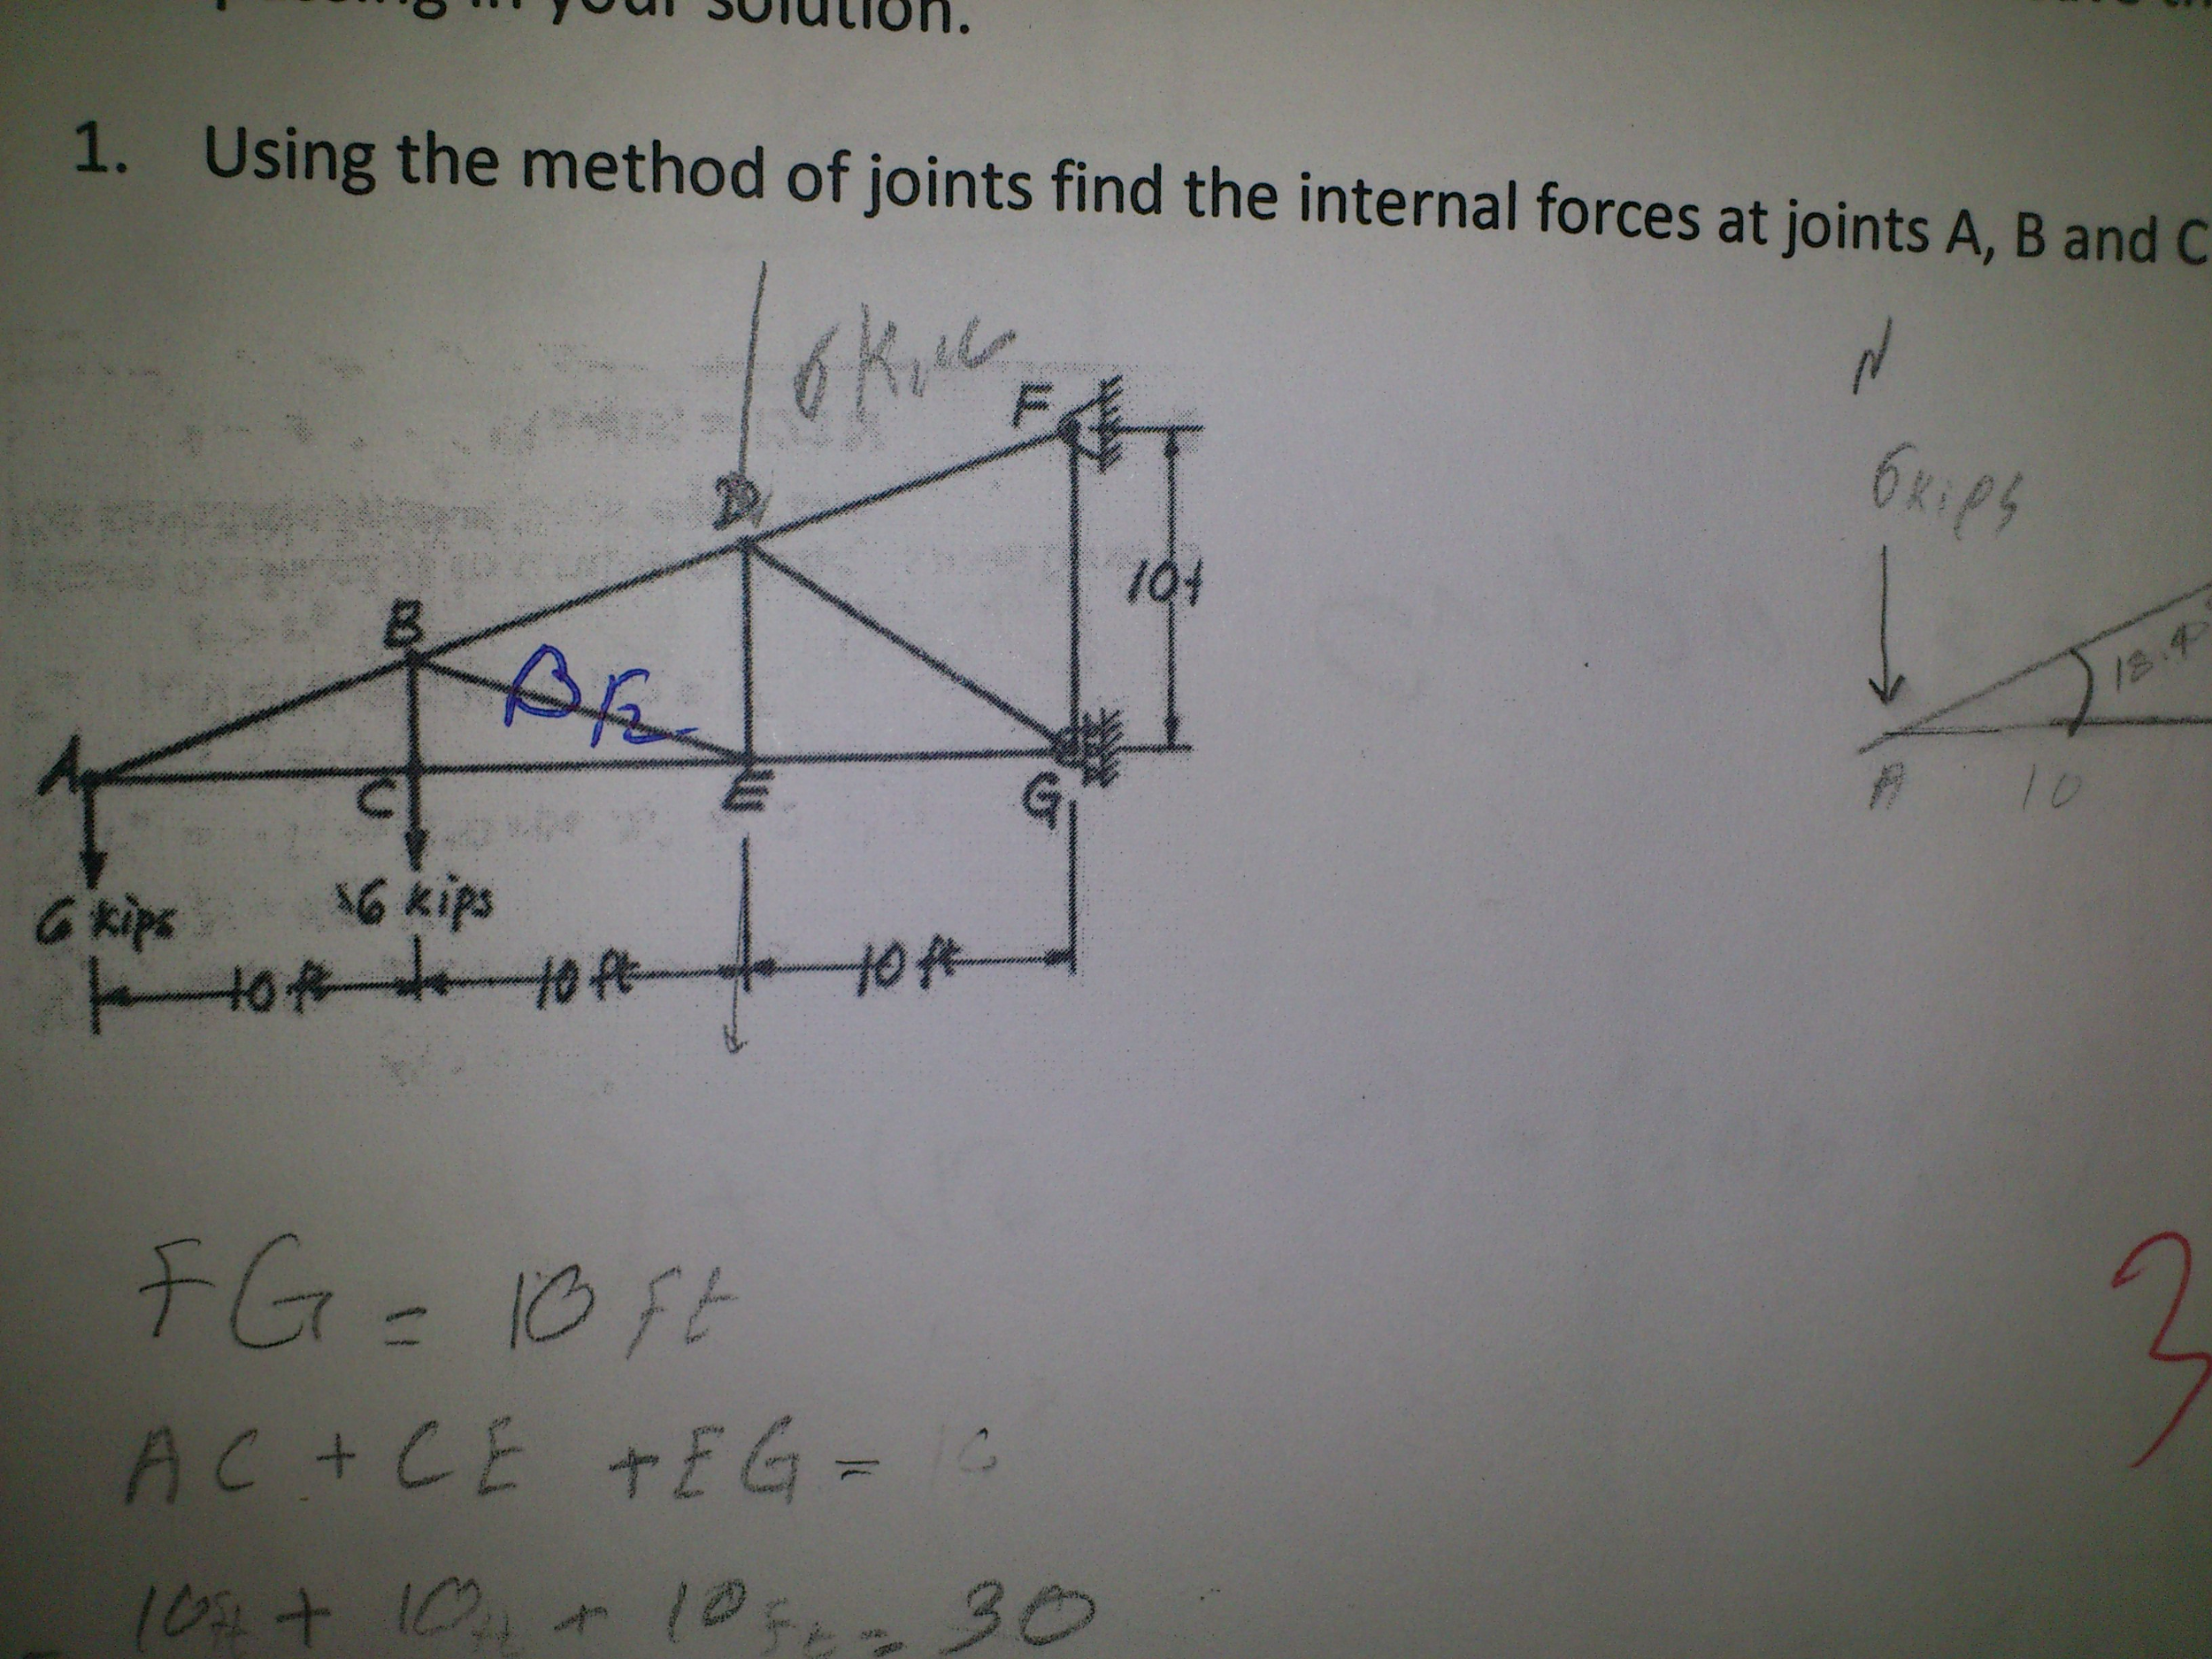 Using the method of joints, find the forces on A,